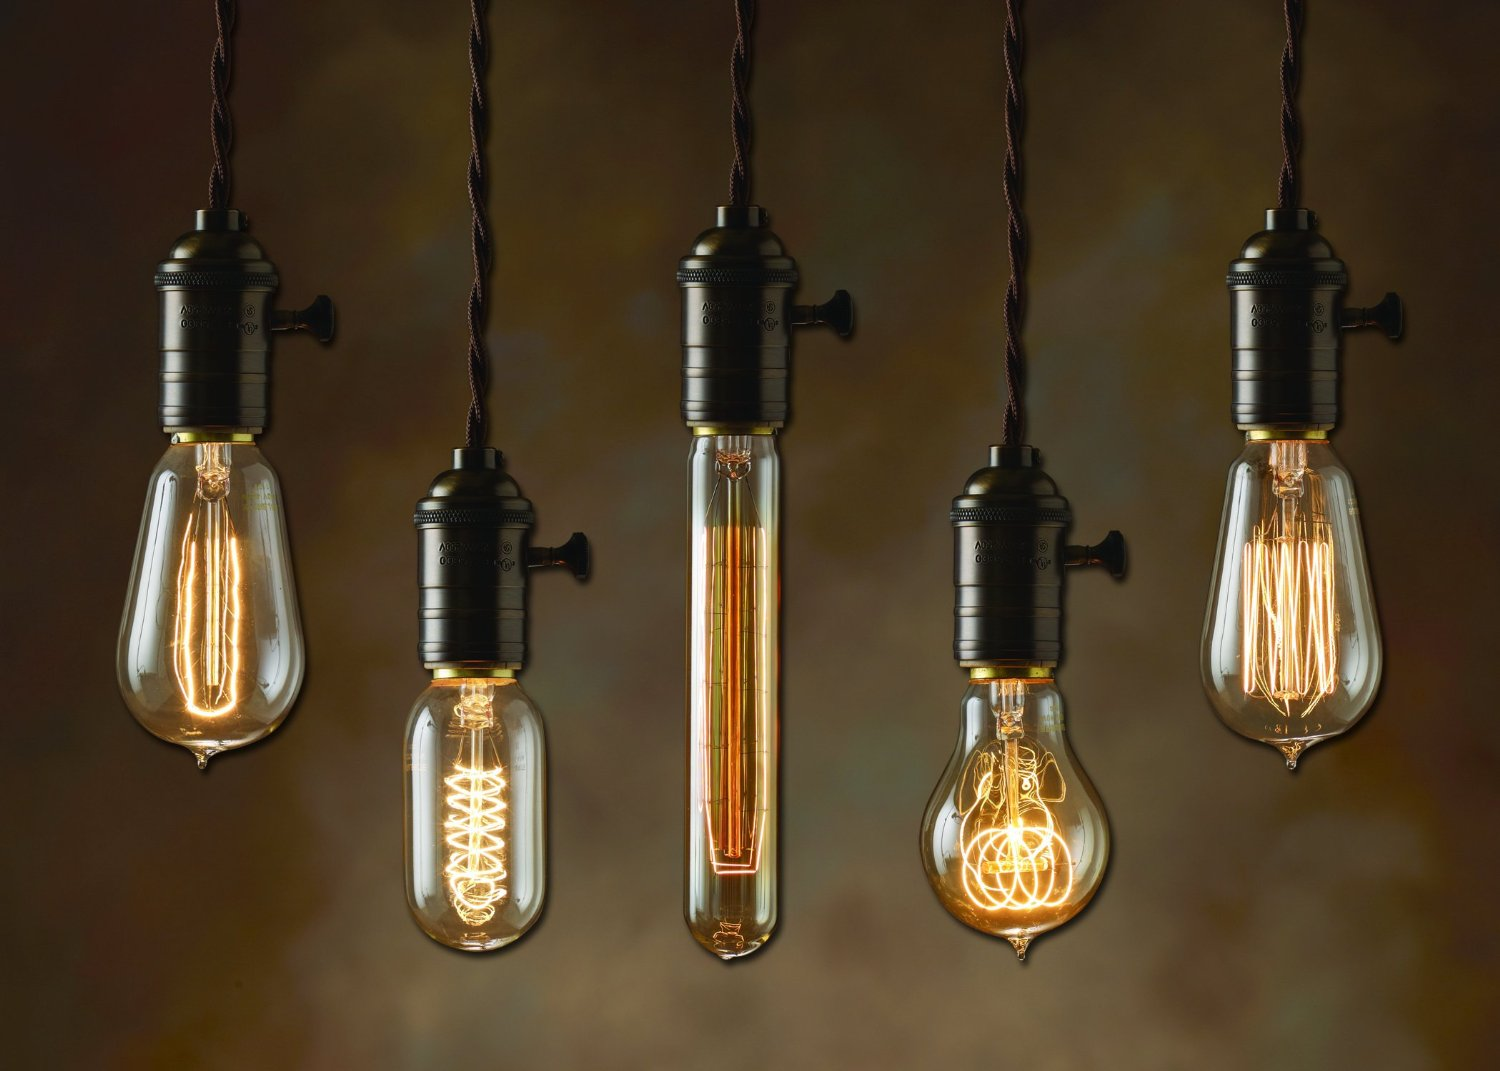 Vintage Light Bulbs Stuff You Should Have